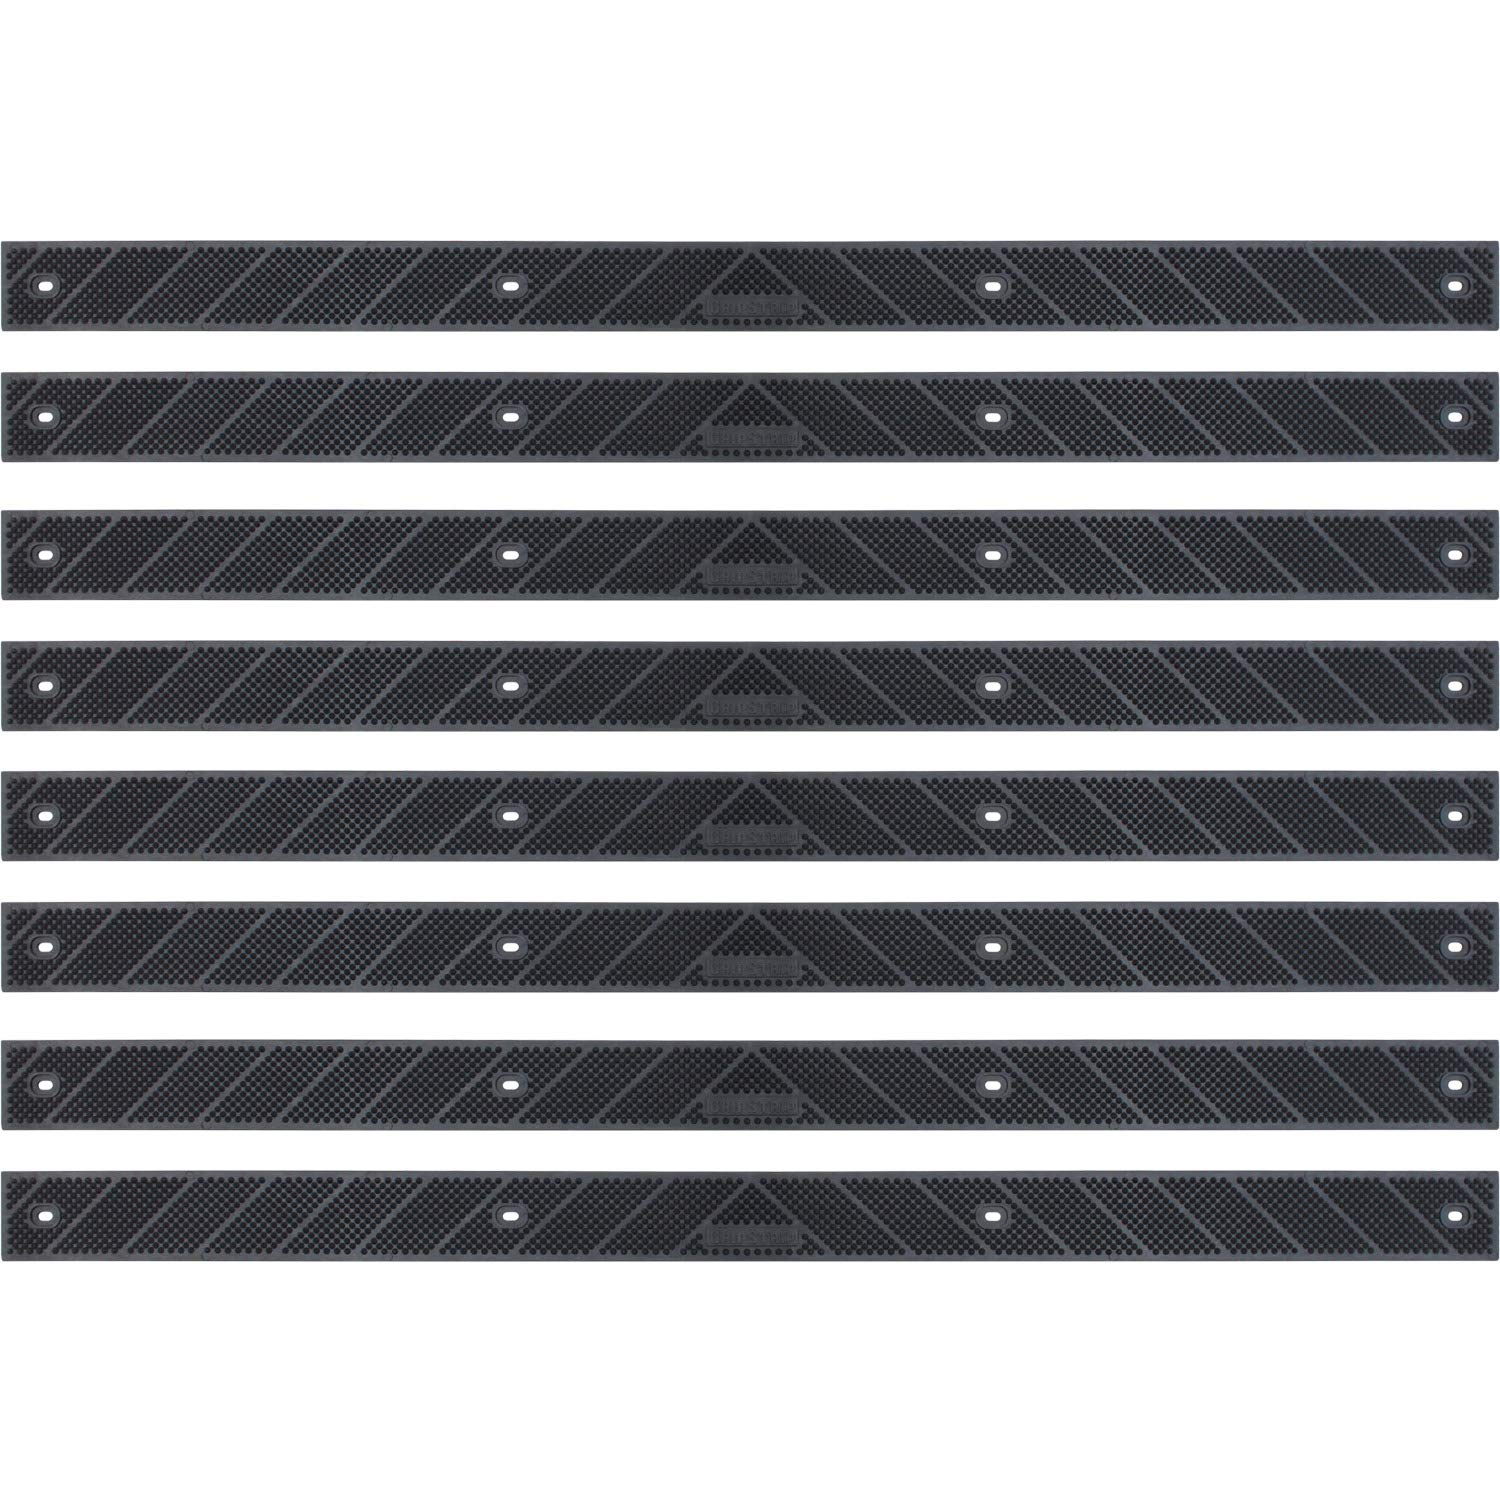 """Grip Strip No Adhesive Tread Tape Anti Non Slip High Traction Safety Step Indoor Outdoor for any Stairs in your Home or Outdoor Setting 32""""x 2"""" 8 Pack Black"""